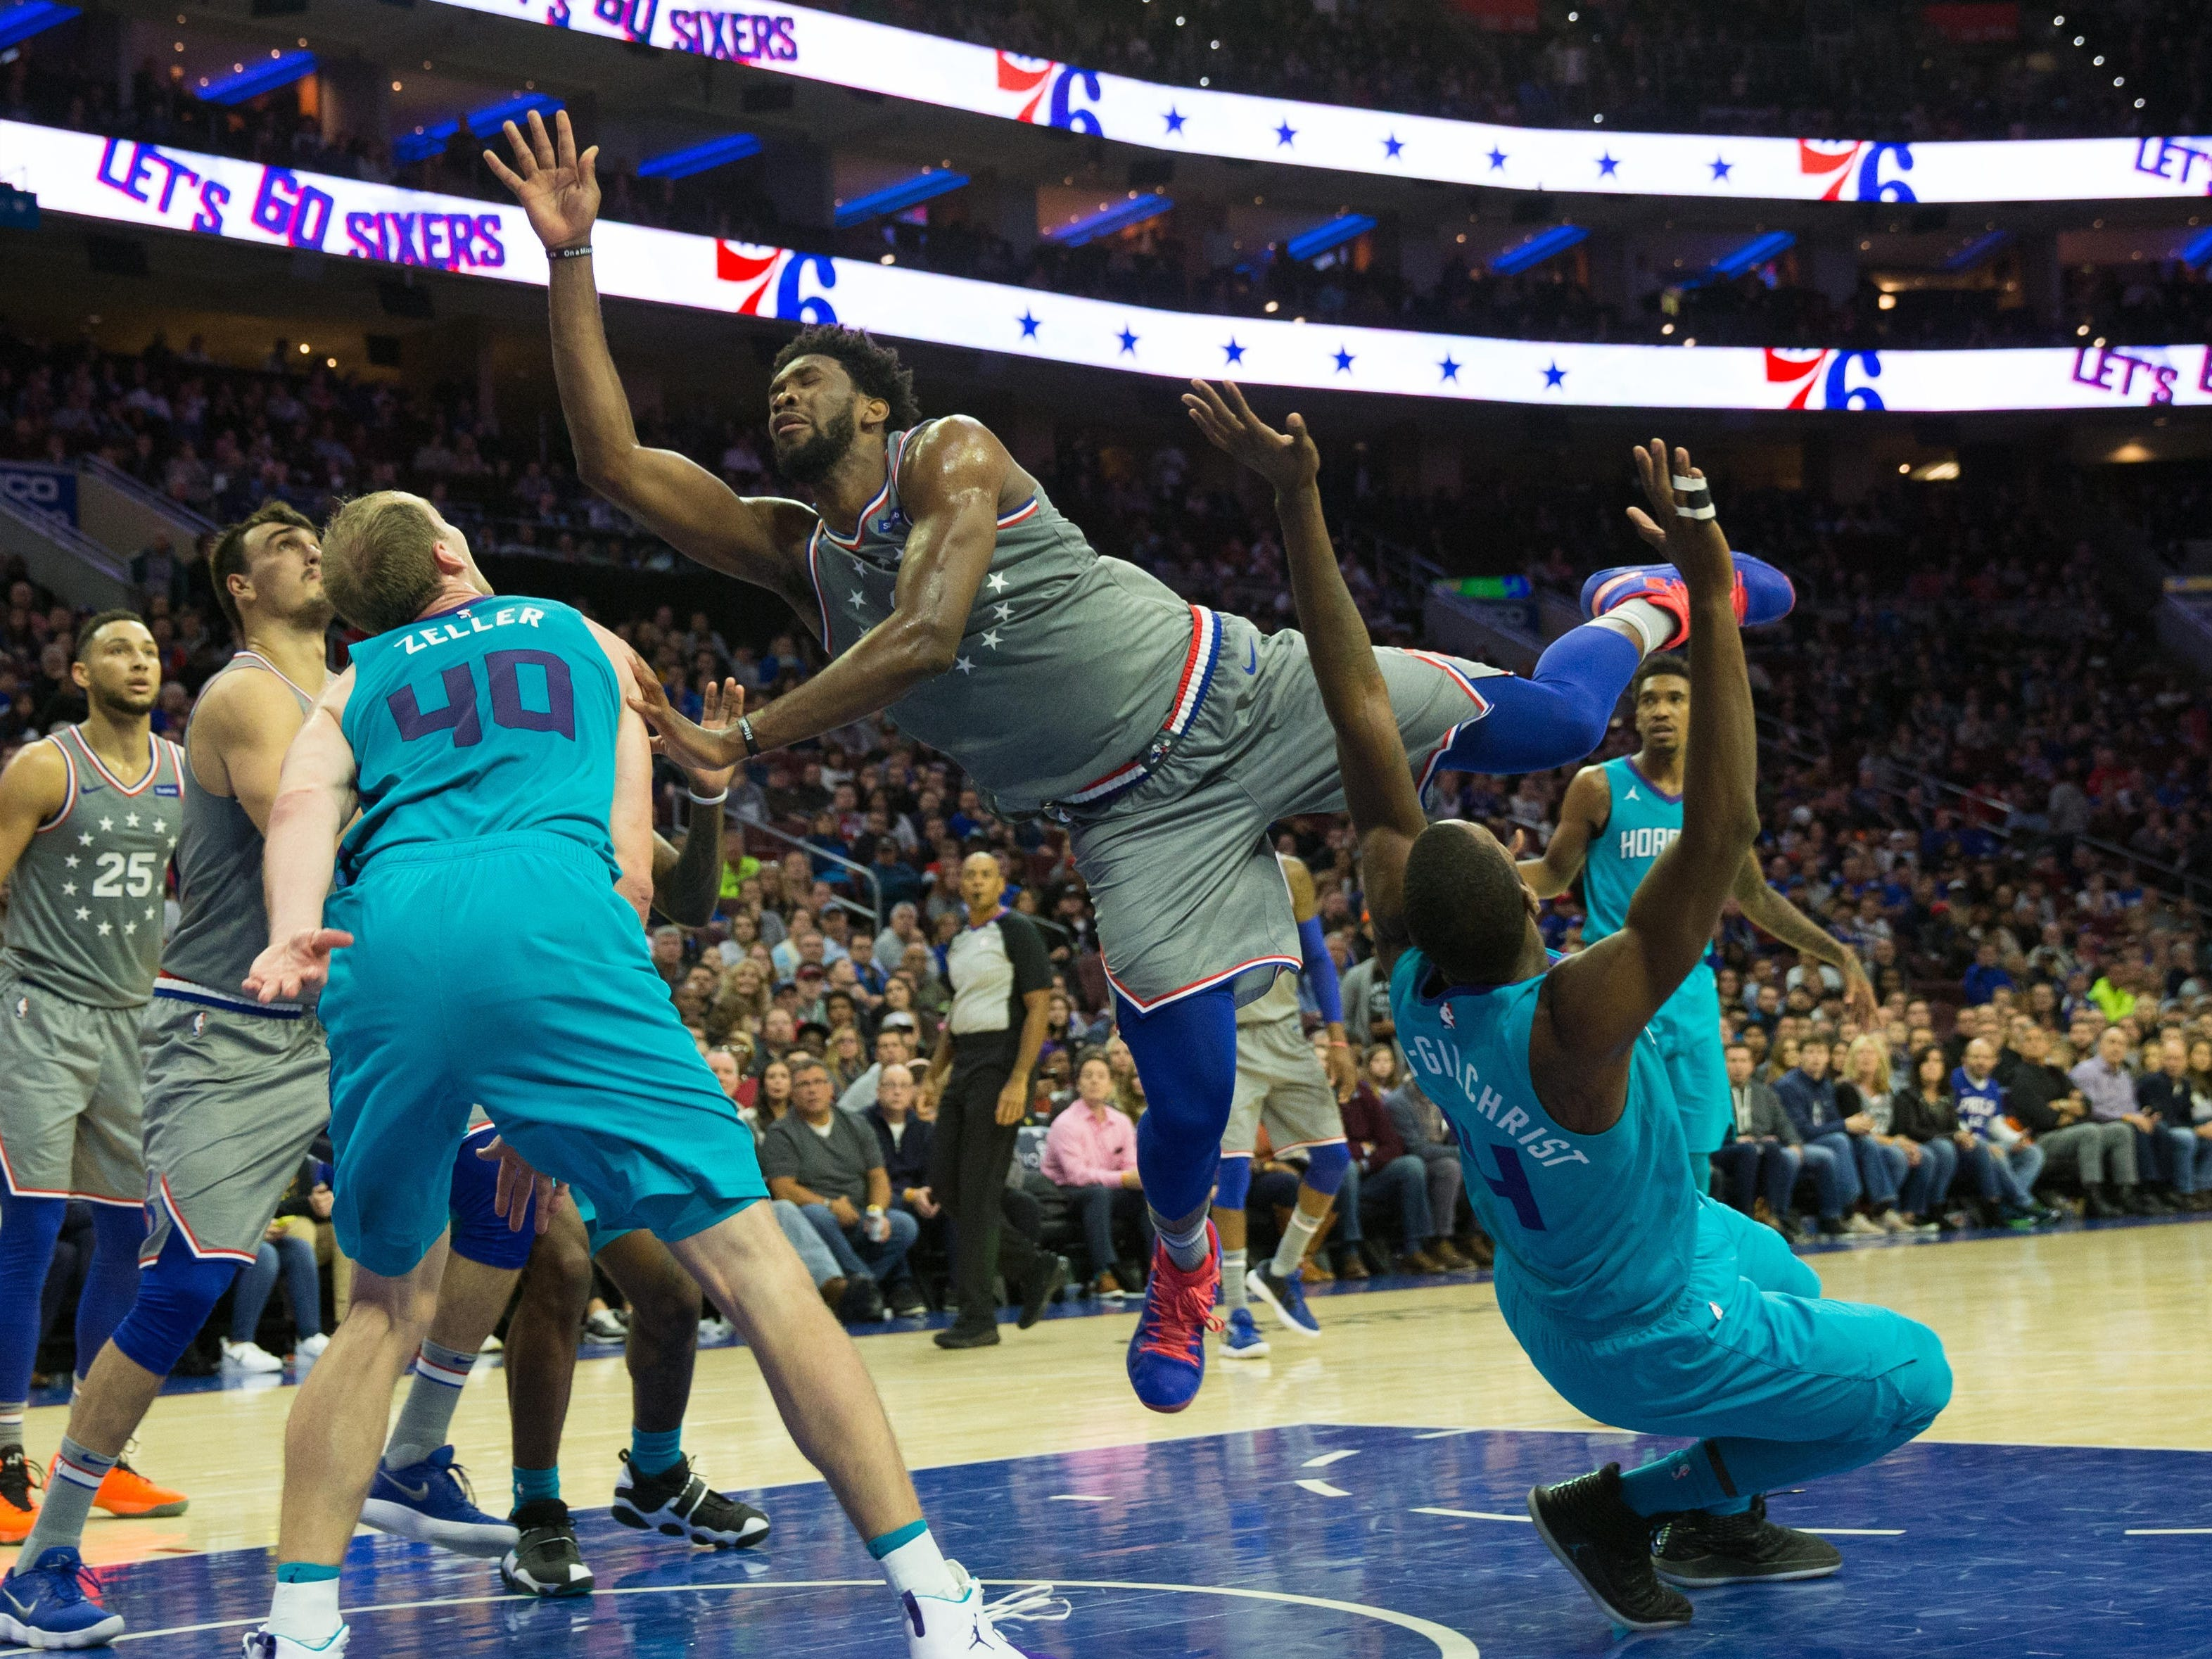 Nov. 9: Sixers center Joel Embiid (21) goes careening down the lane between Hornets defenders Cody Zeller (40) and Michael Kidd-Gilchrist (14) during the fourth quarter in Philadelphia.